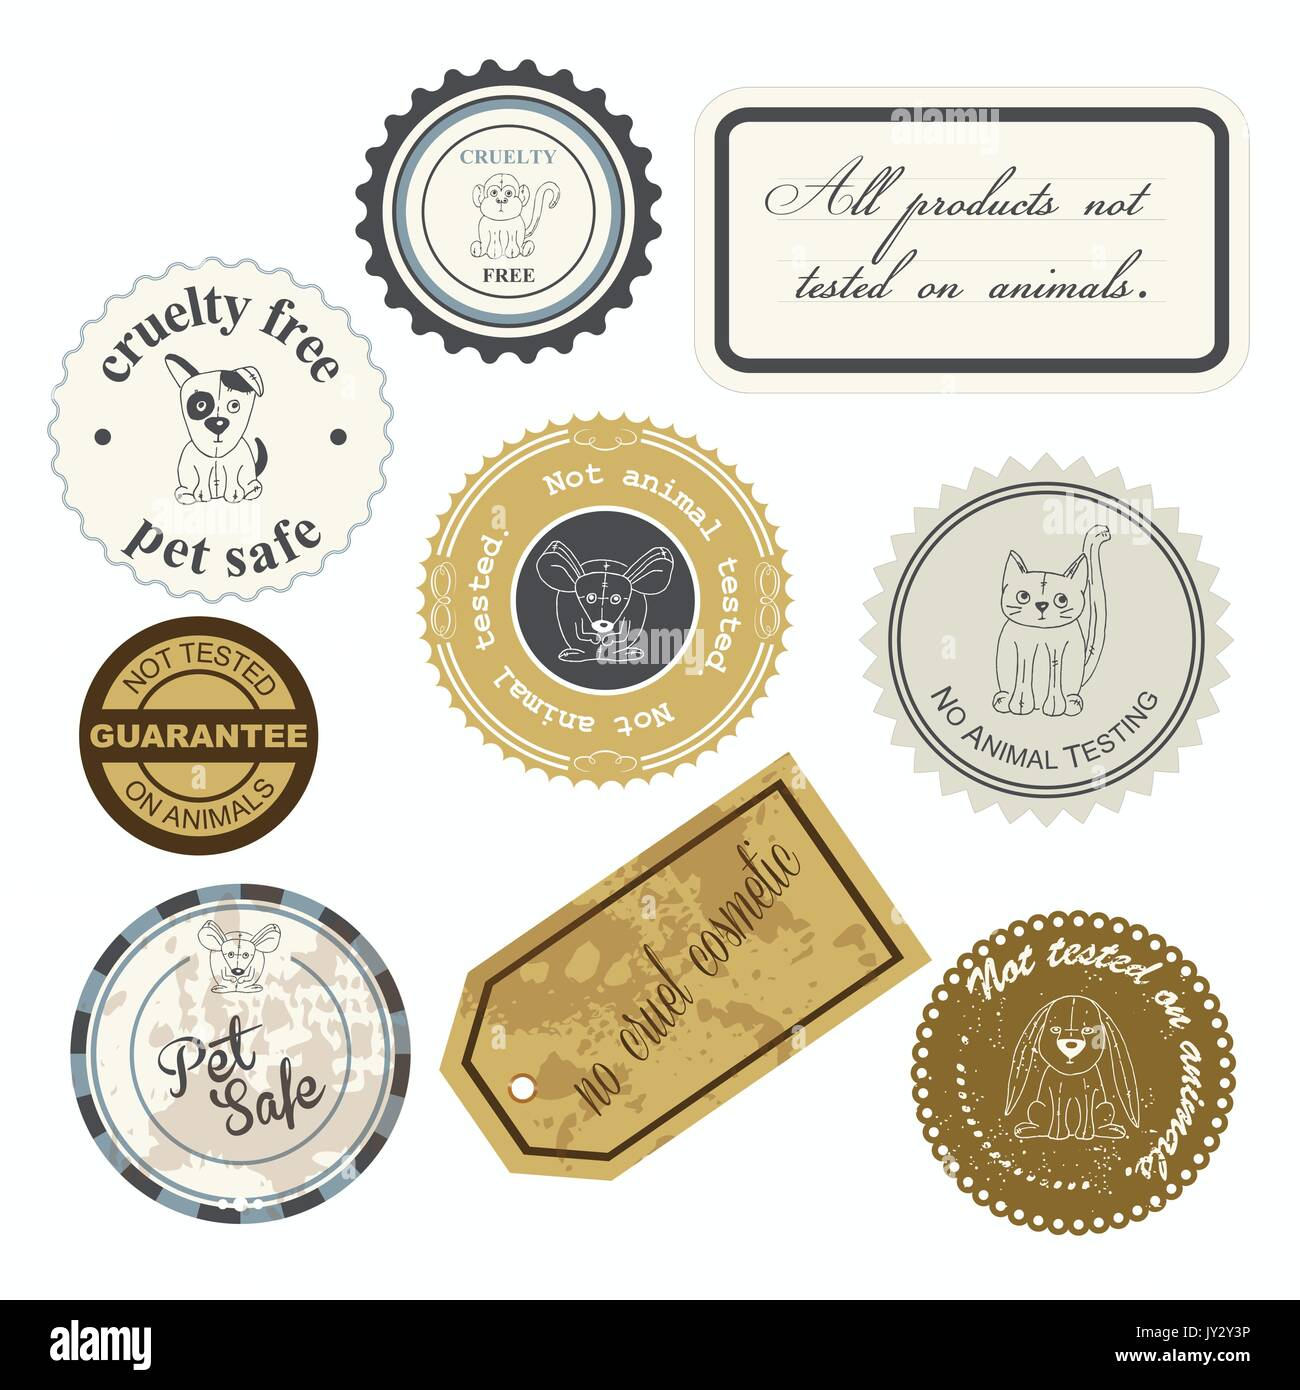 vector illustration of a set of cruelty free vintage labels with hand drawn plushies animals - Stock Image